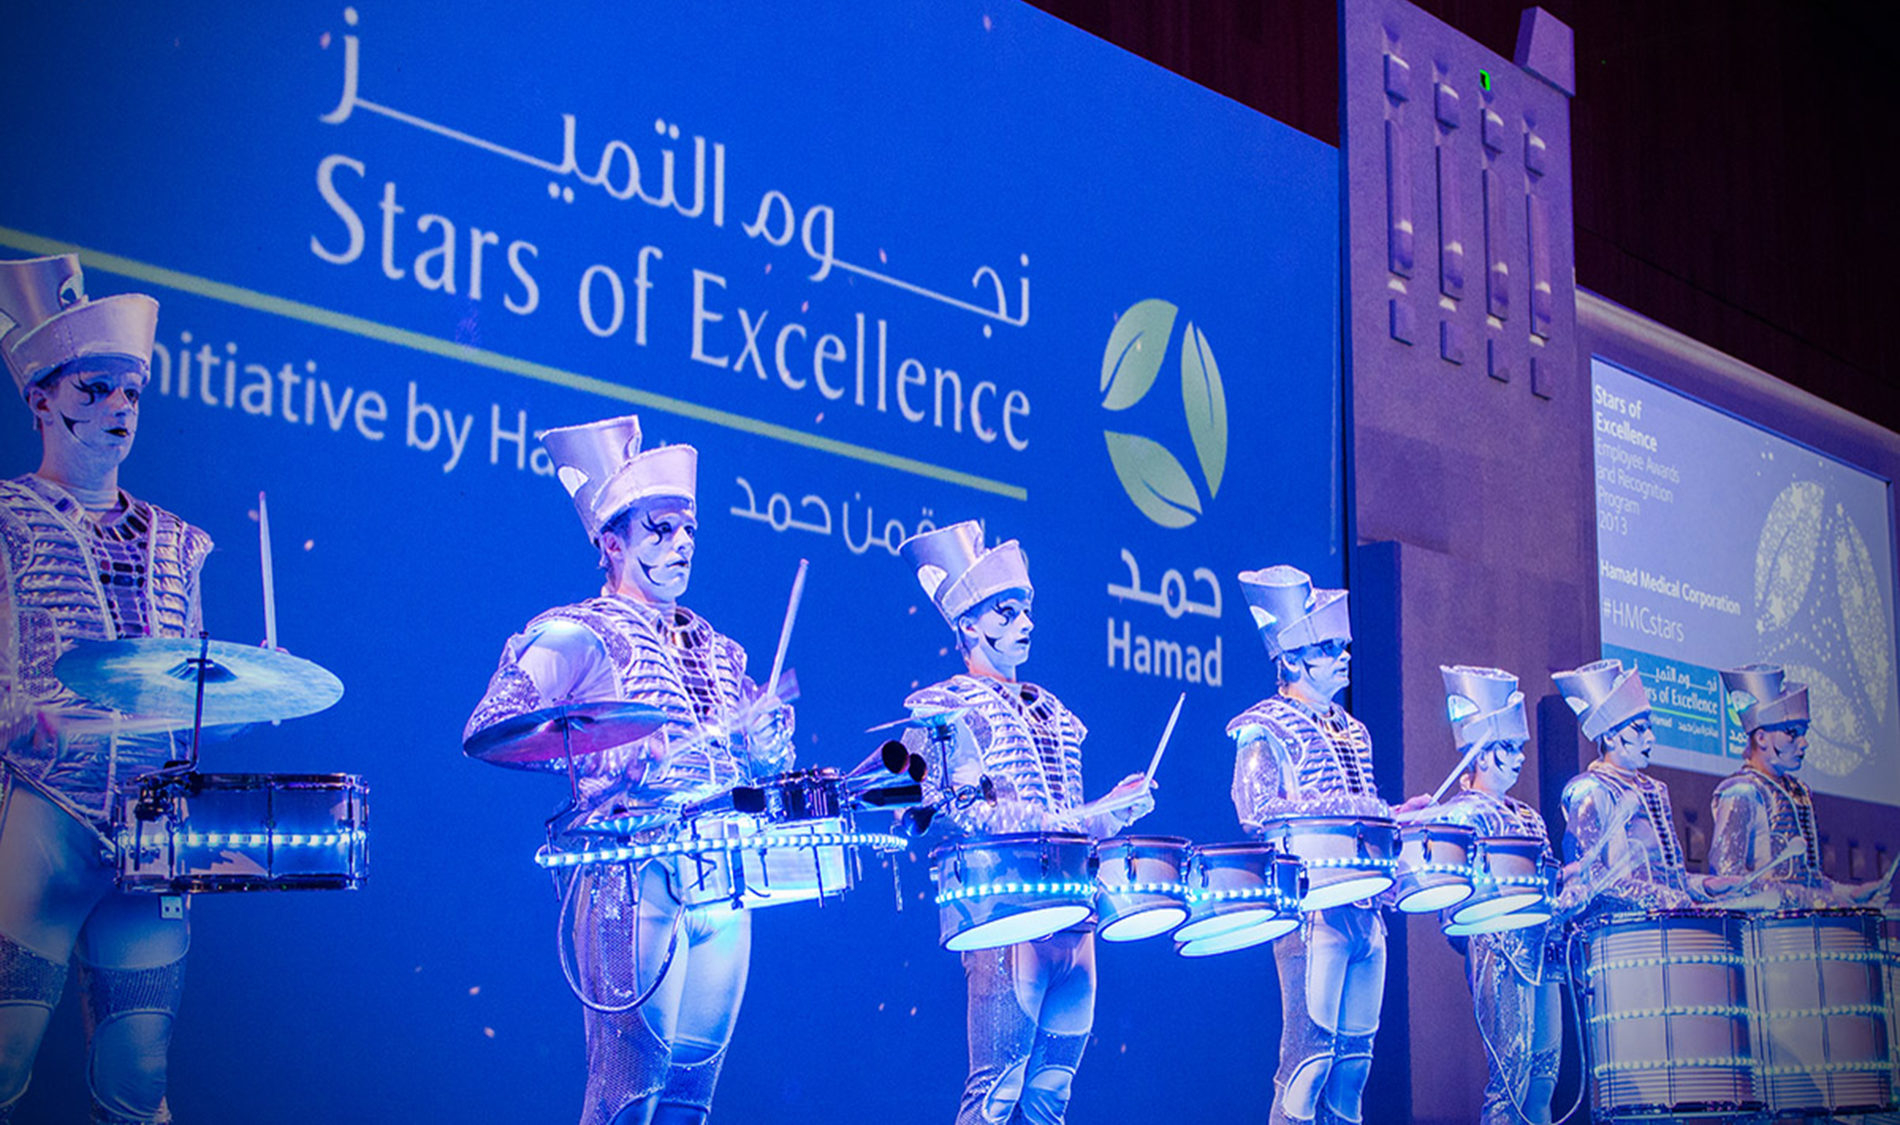 HMC, STARS OF EXCELLENCE